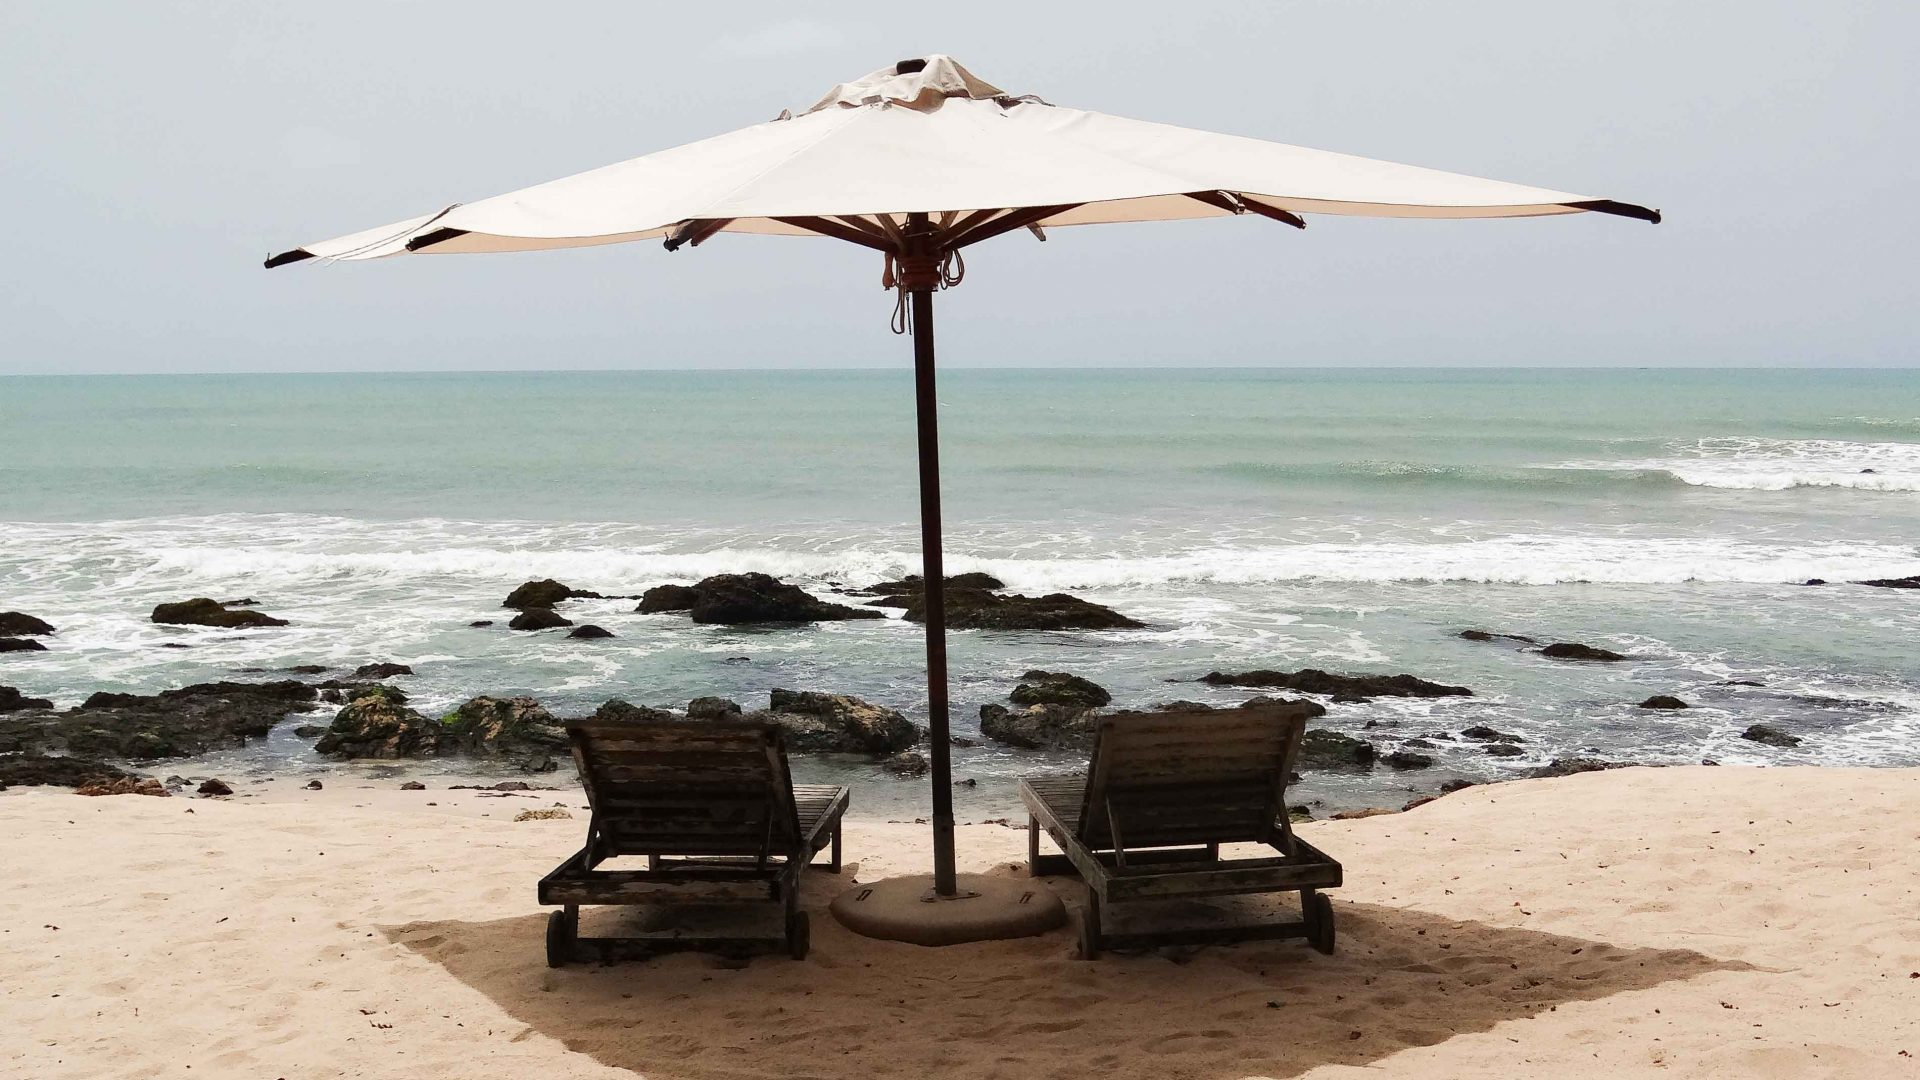 Beach chairs overlook the water in Ghana.